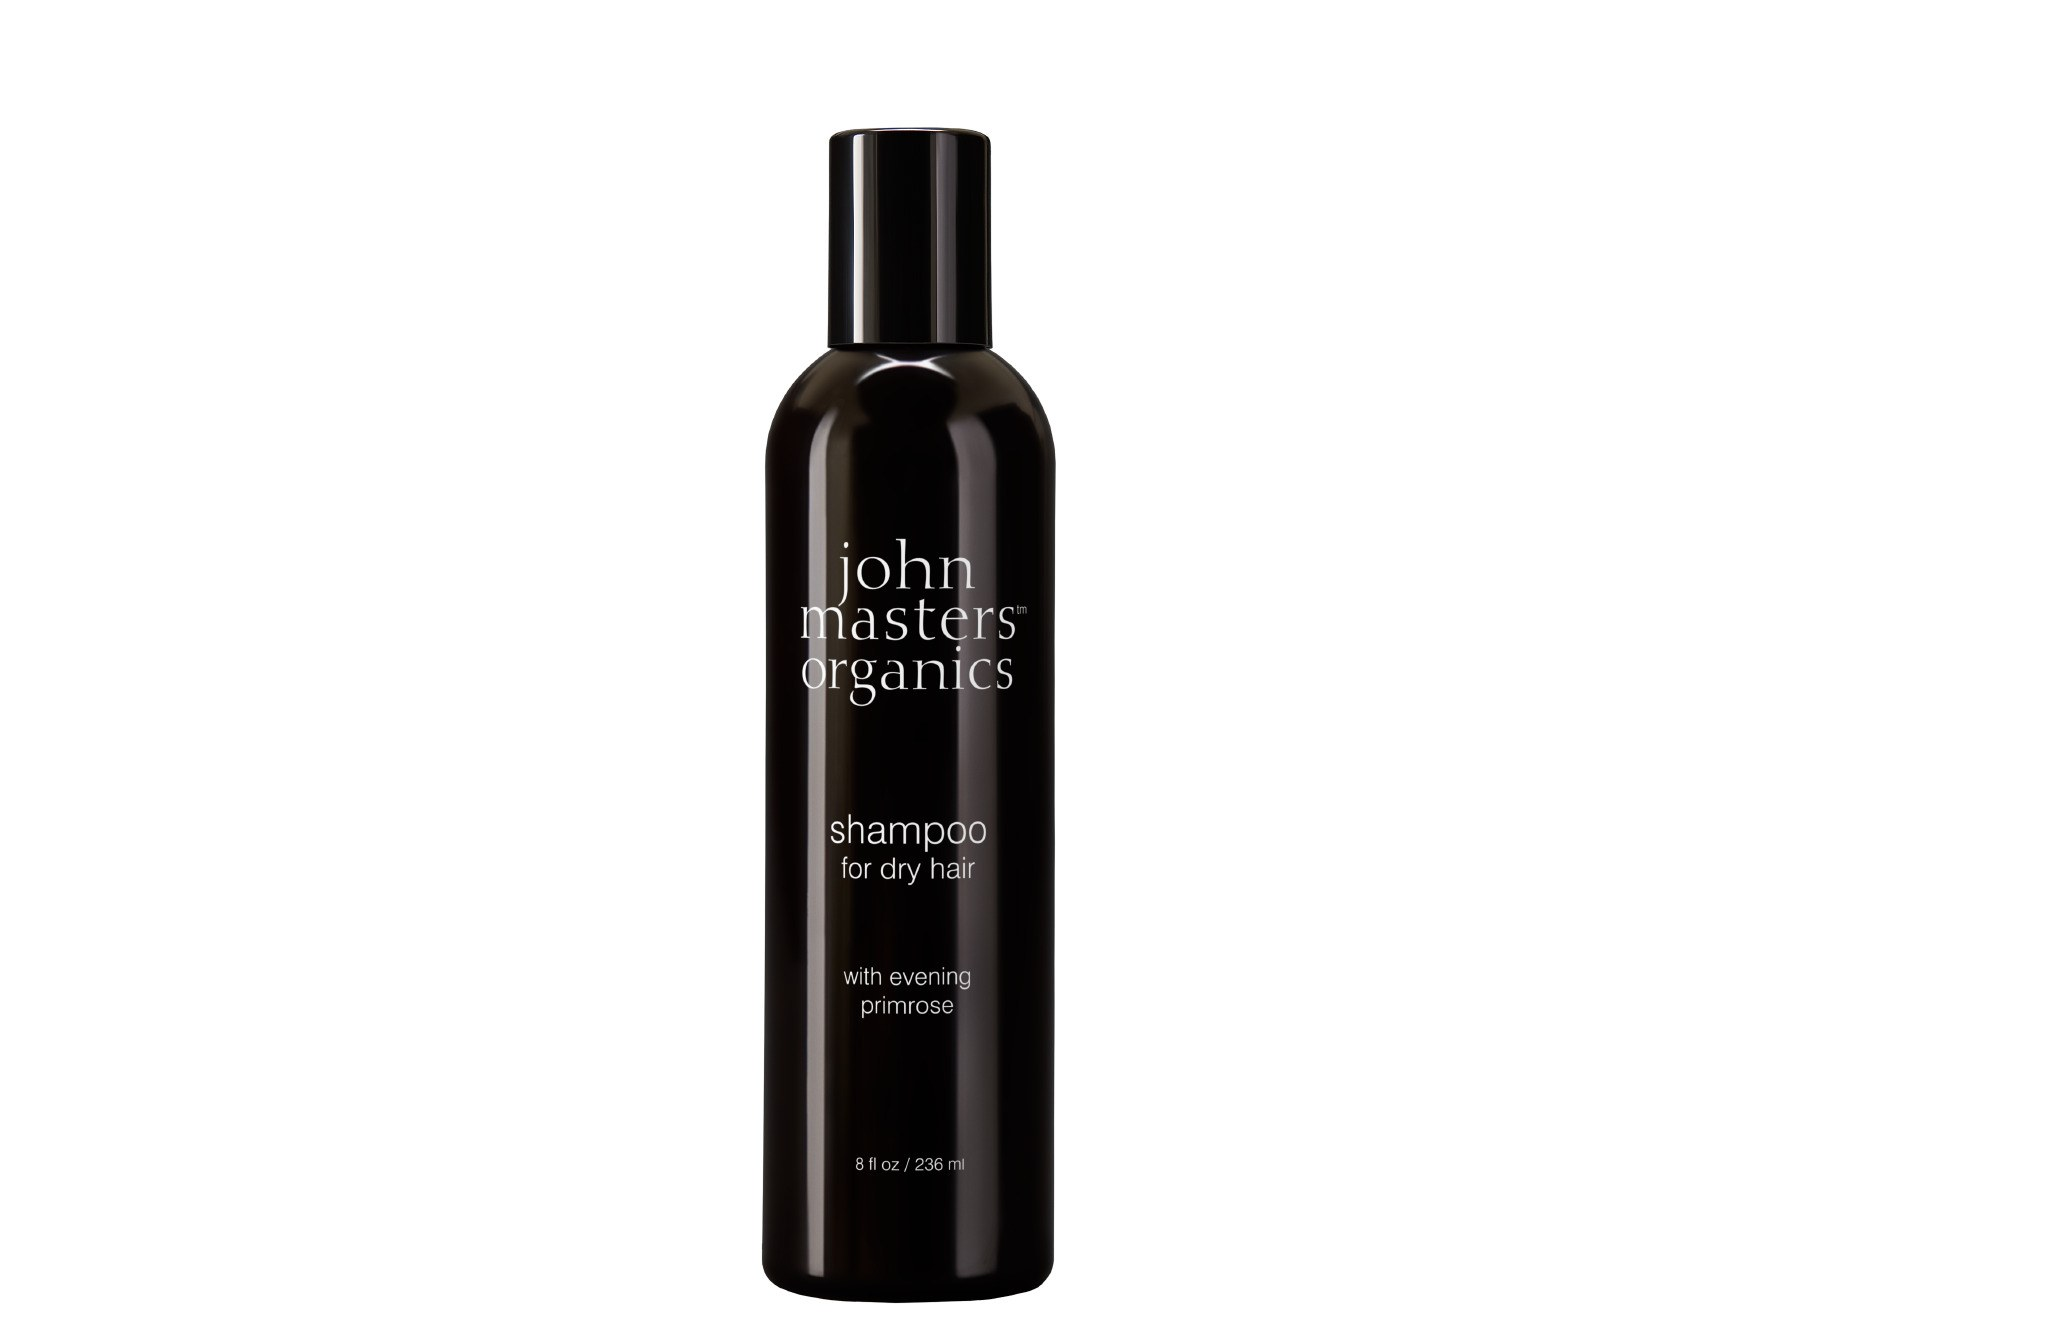 Shampoo for Dry Hair with Evening Primrose 236ml